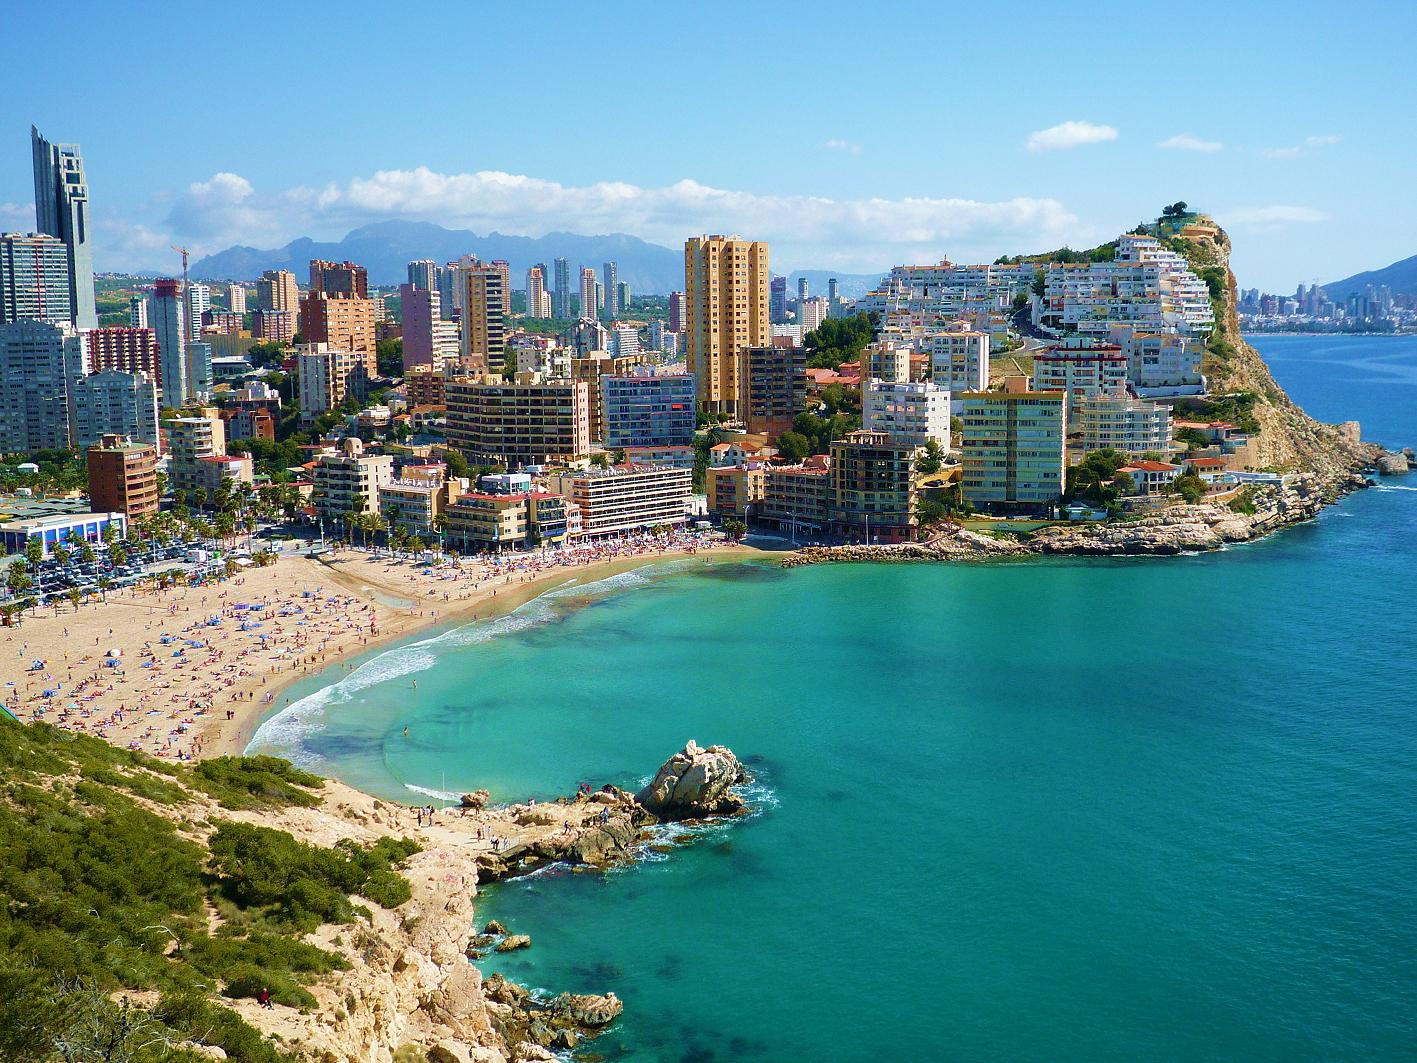 Mighty spain reigns supreme as the most popular holiday destination